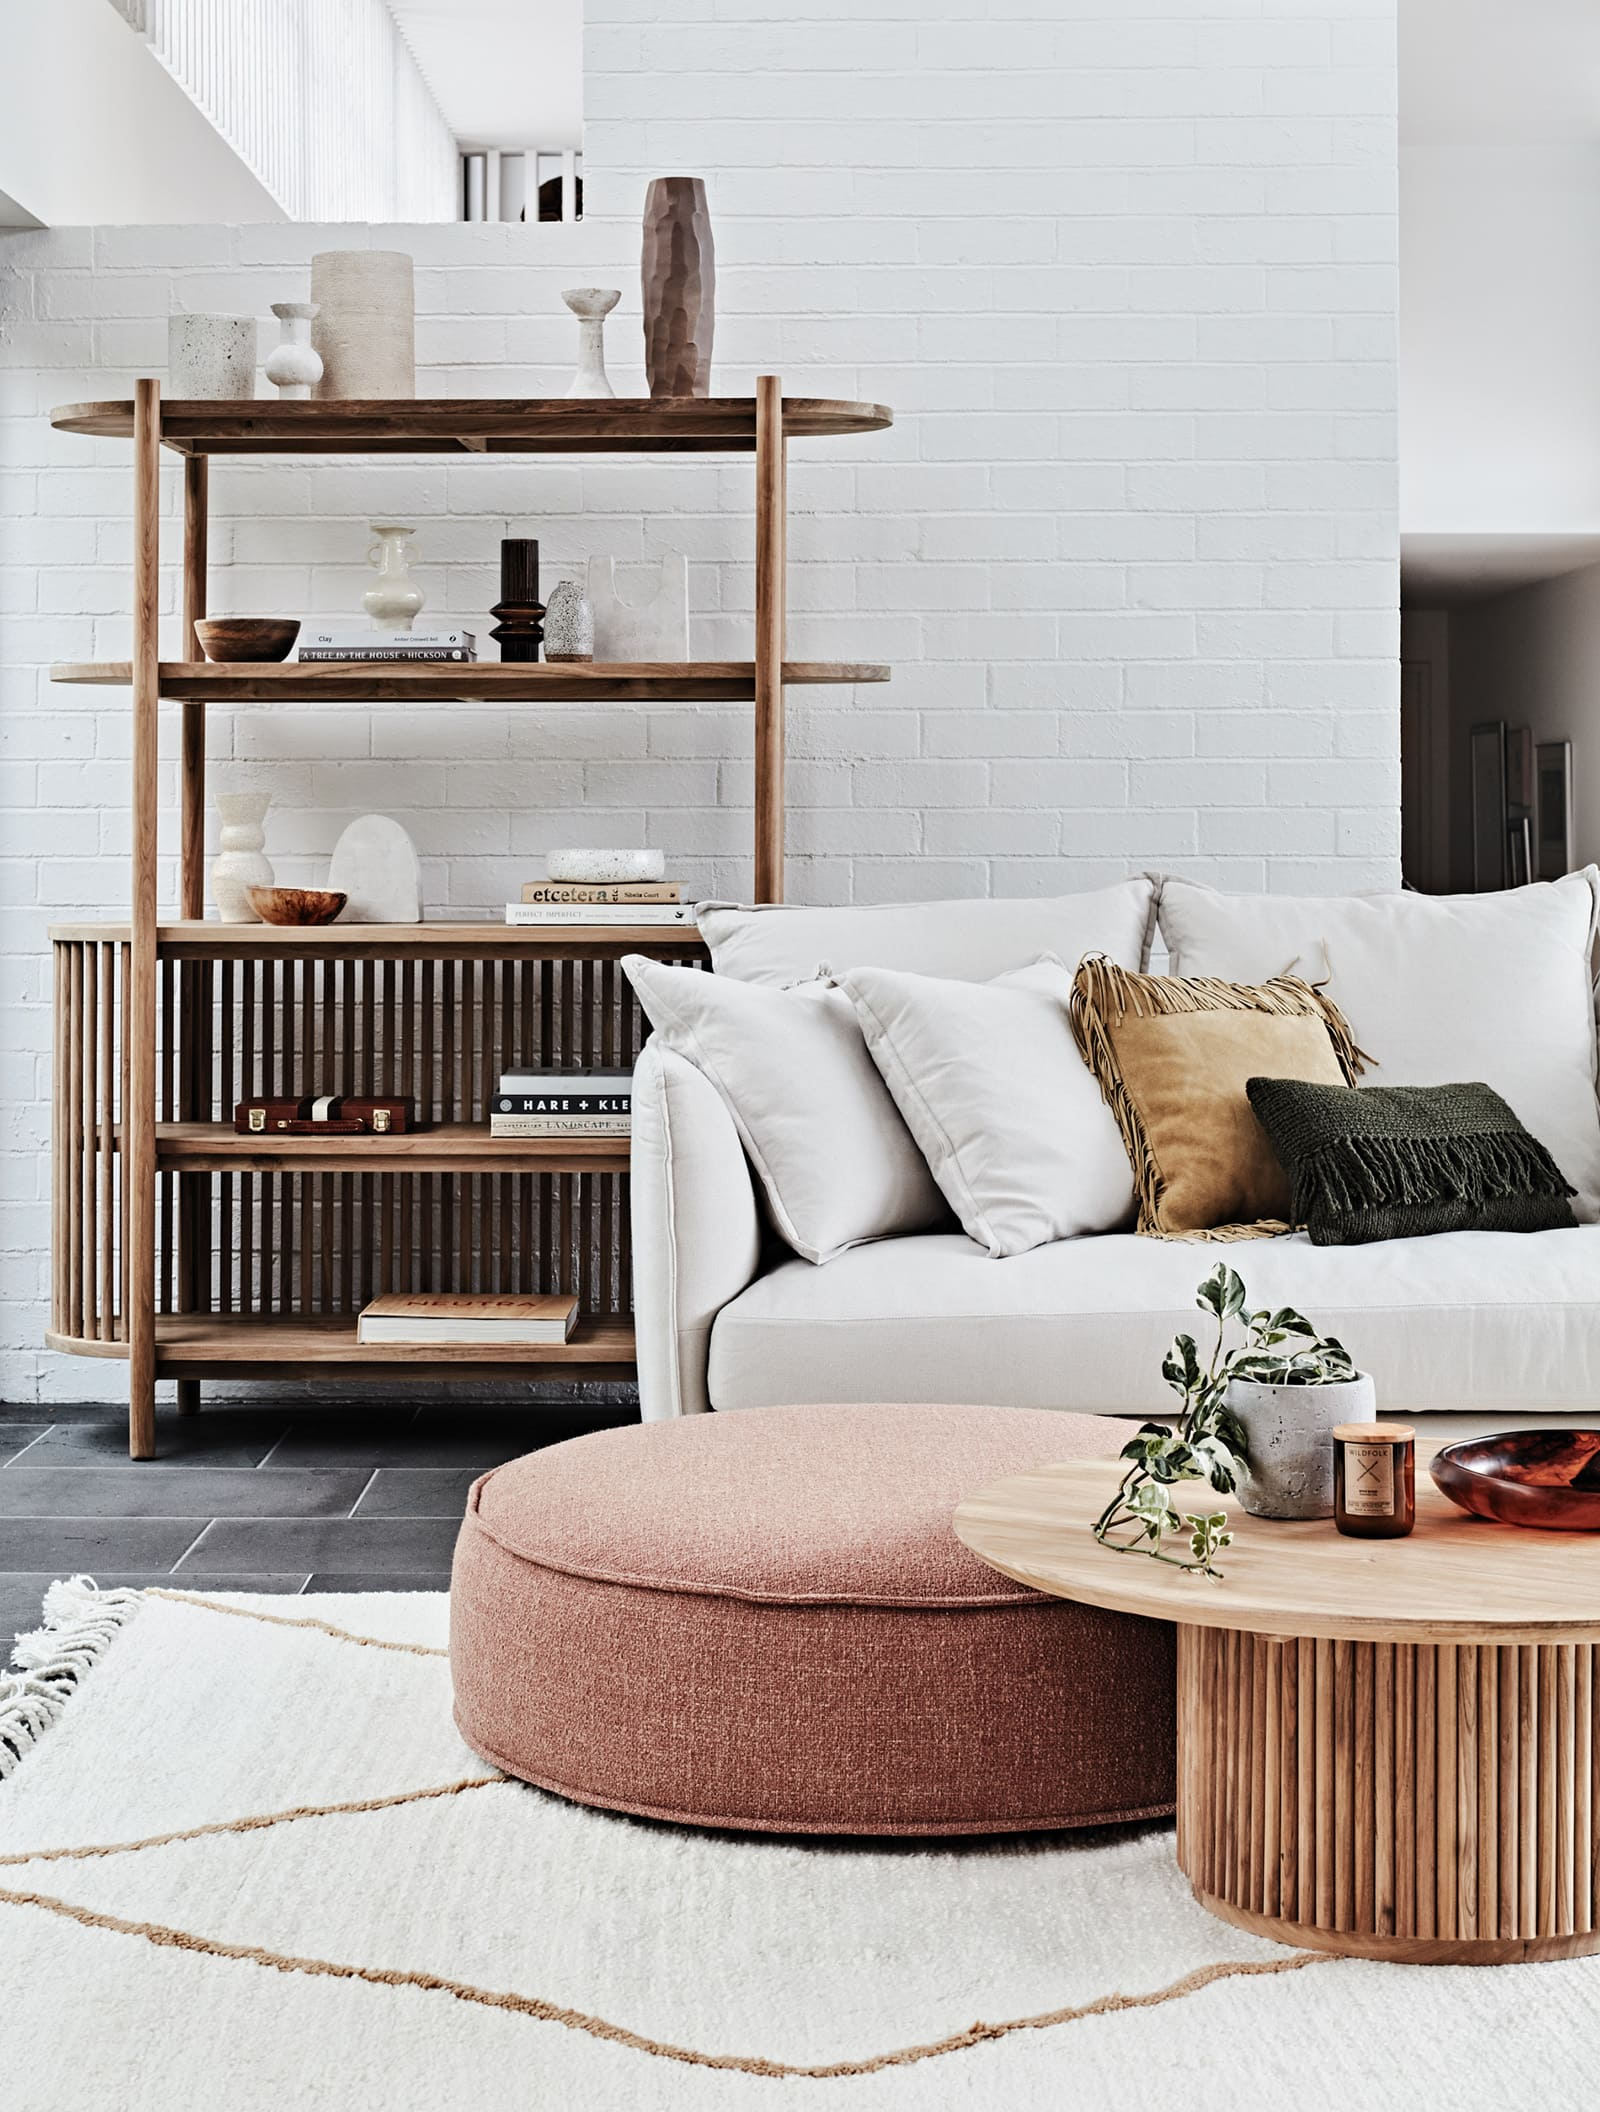 The 2020 Interior Design Trends Set to Transform your Home